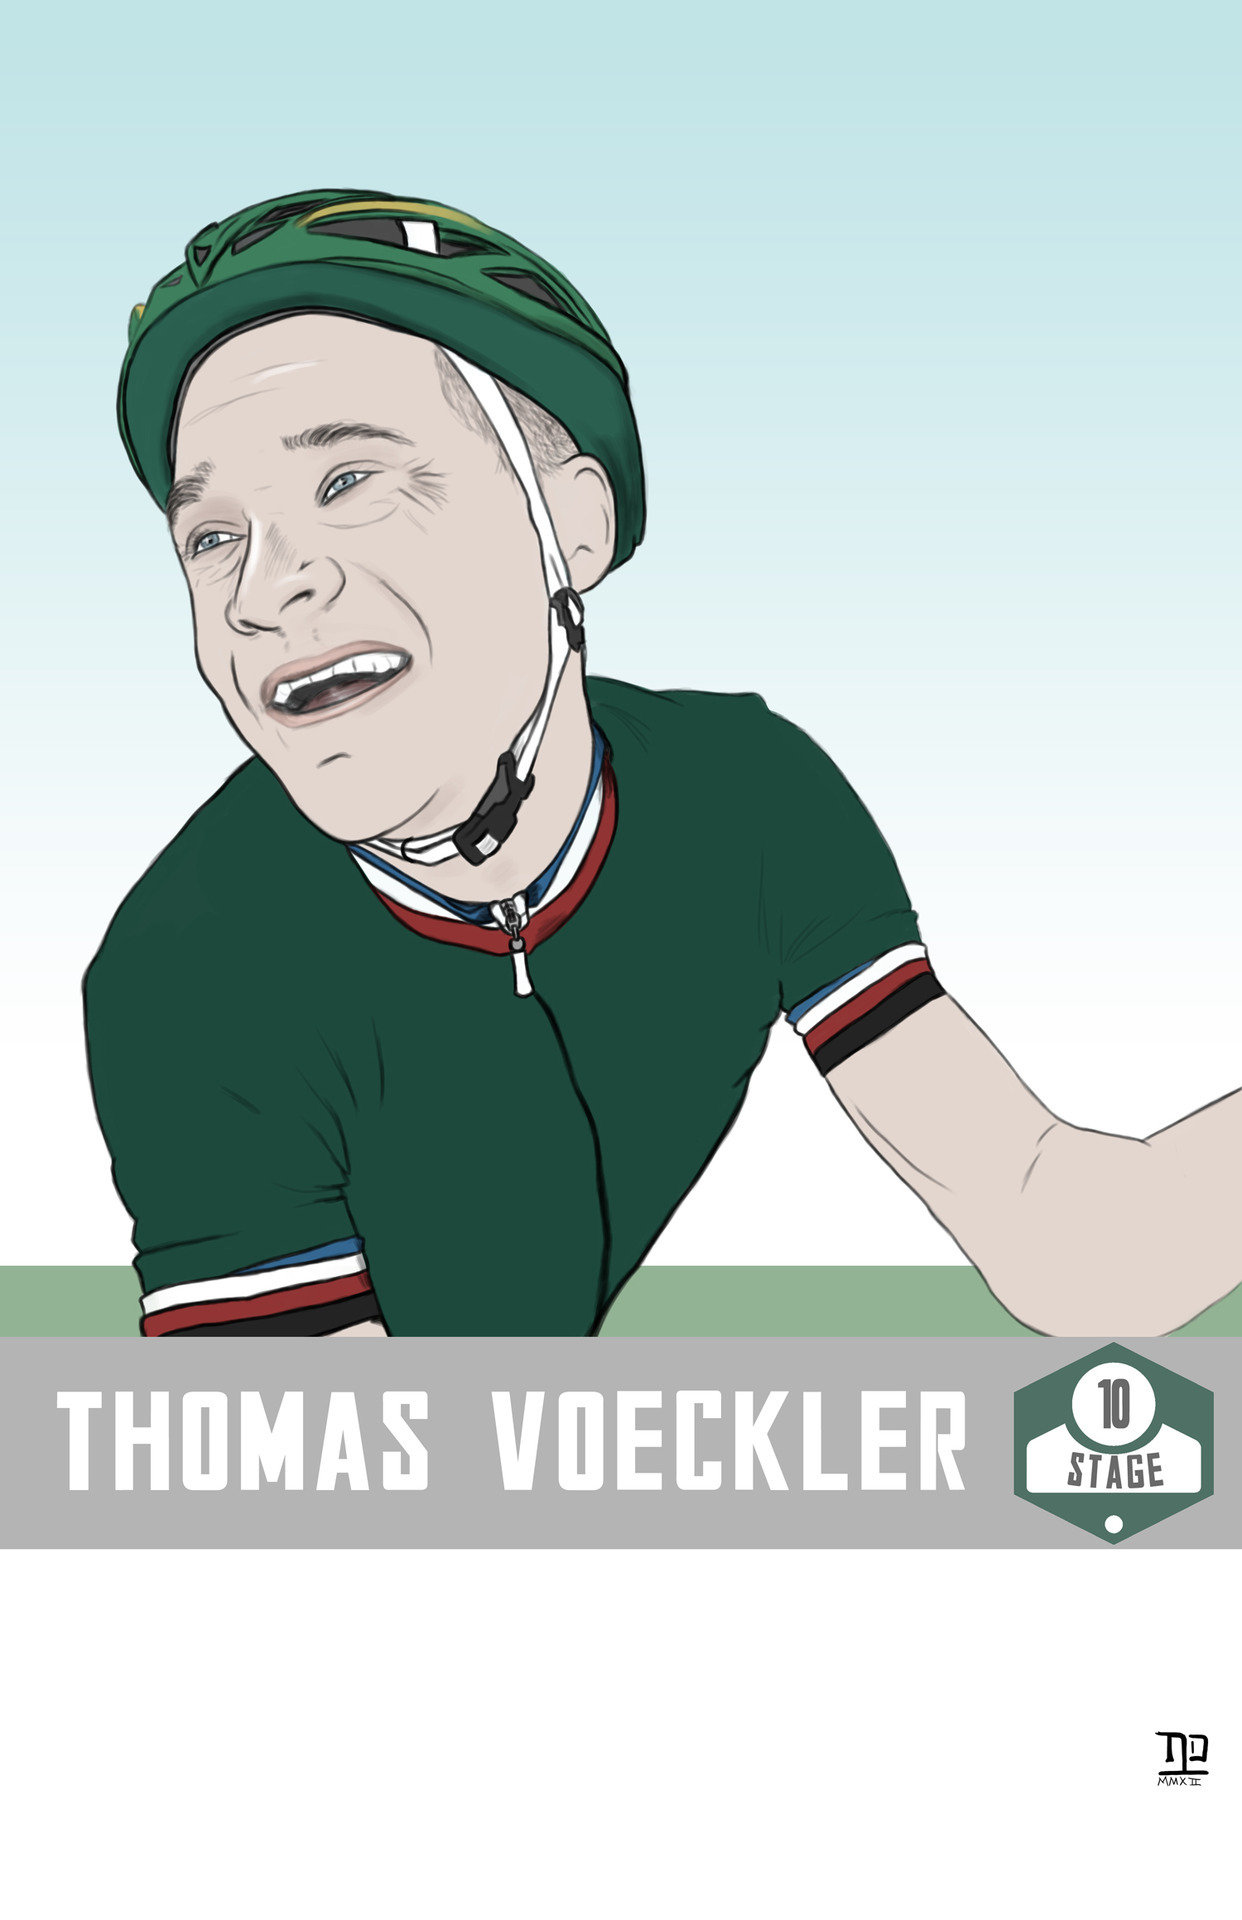 lastpolkadesign:  Tour de France: Stage 10 winner, Thomas Voeckler ©nathan dallesasse